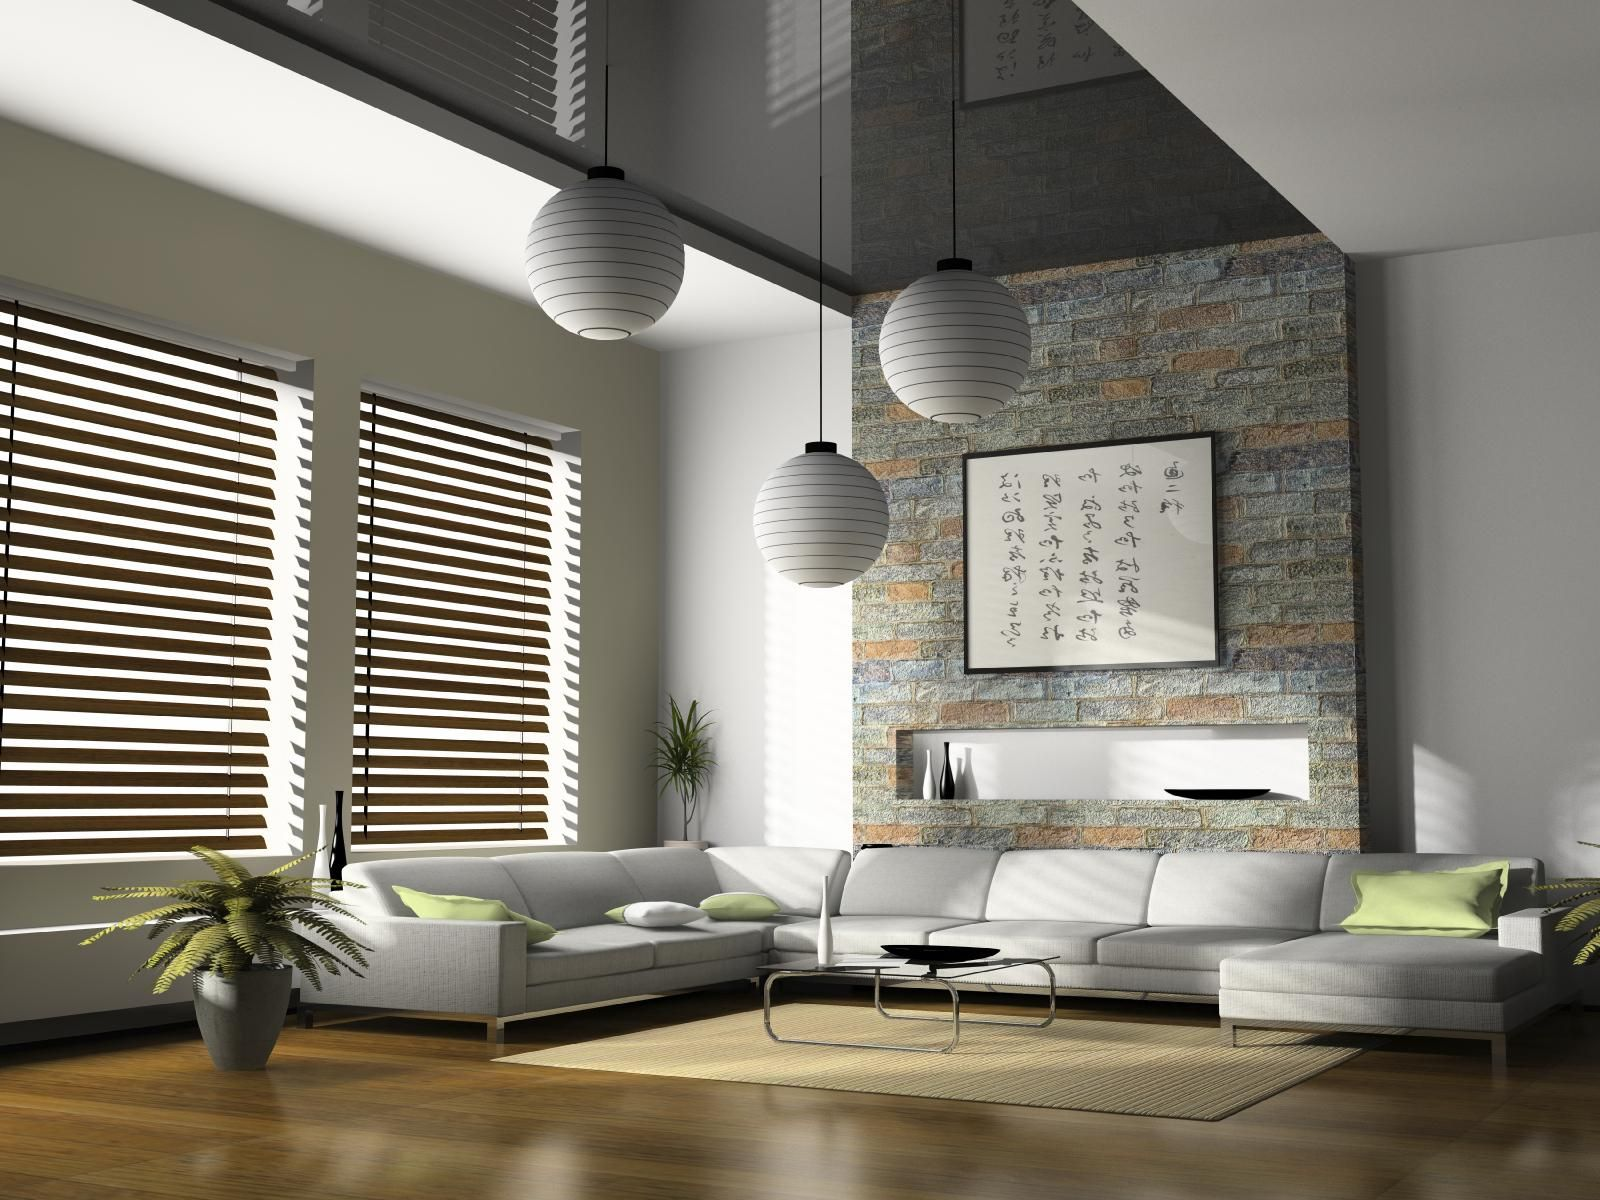 Fashionable Window Blinds Design In Modern Style Living